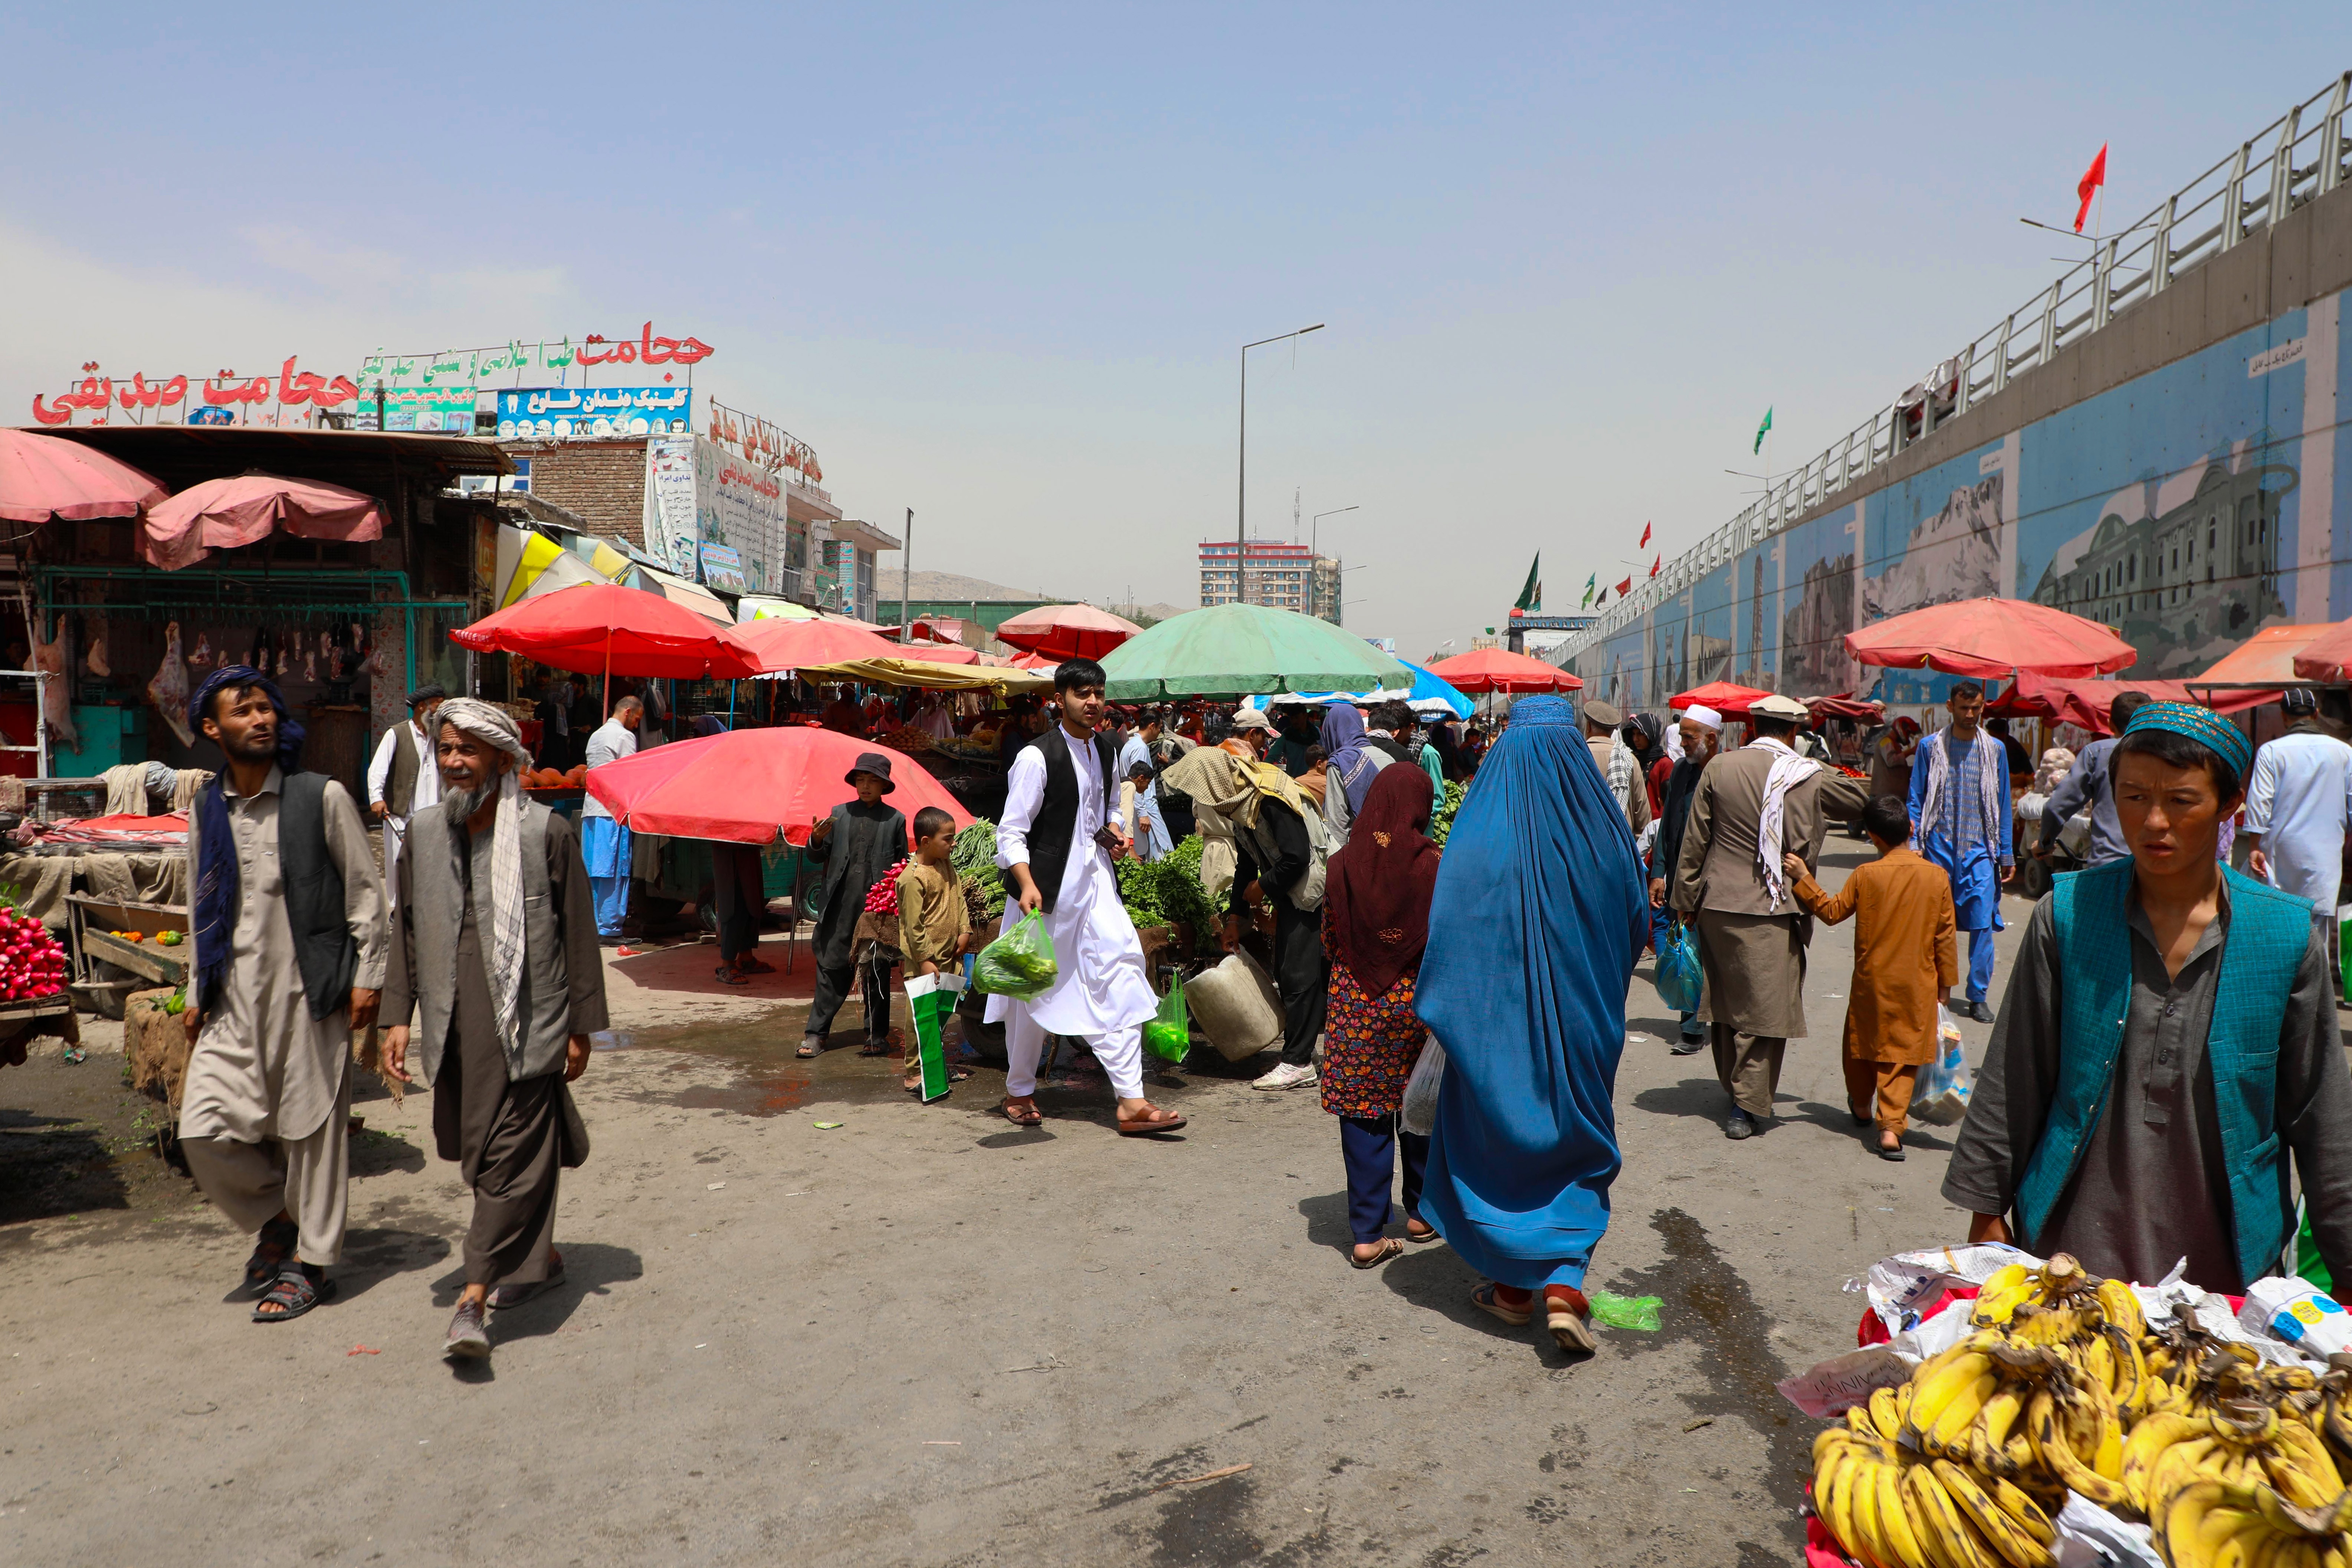 KABUL, AFGHANISTAN - AUGUST 19: People do shopping at marketplace in Afghan capital Kabul on August 19, 2021. (Photo by Sayed Khodaiberdi Sadat/Anadolu Agency via Getty Images)